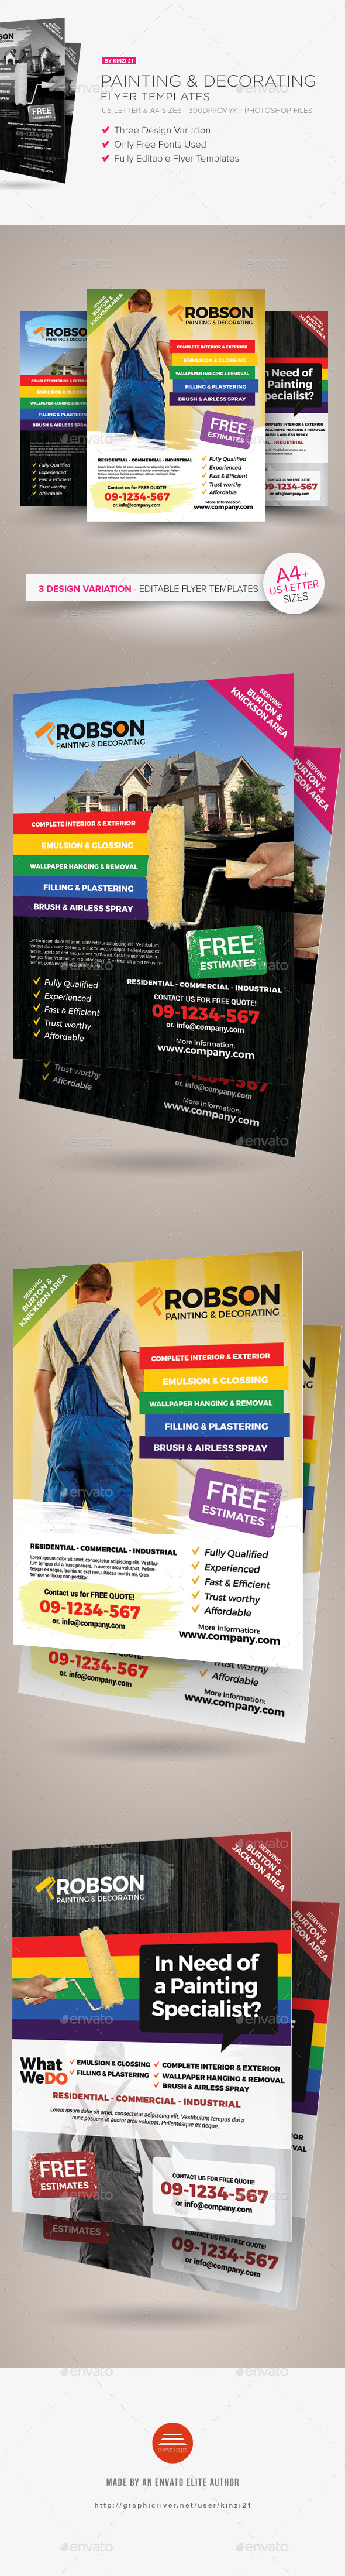 Painting & Decorating Flyer Templates - Corporate Flyers